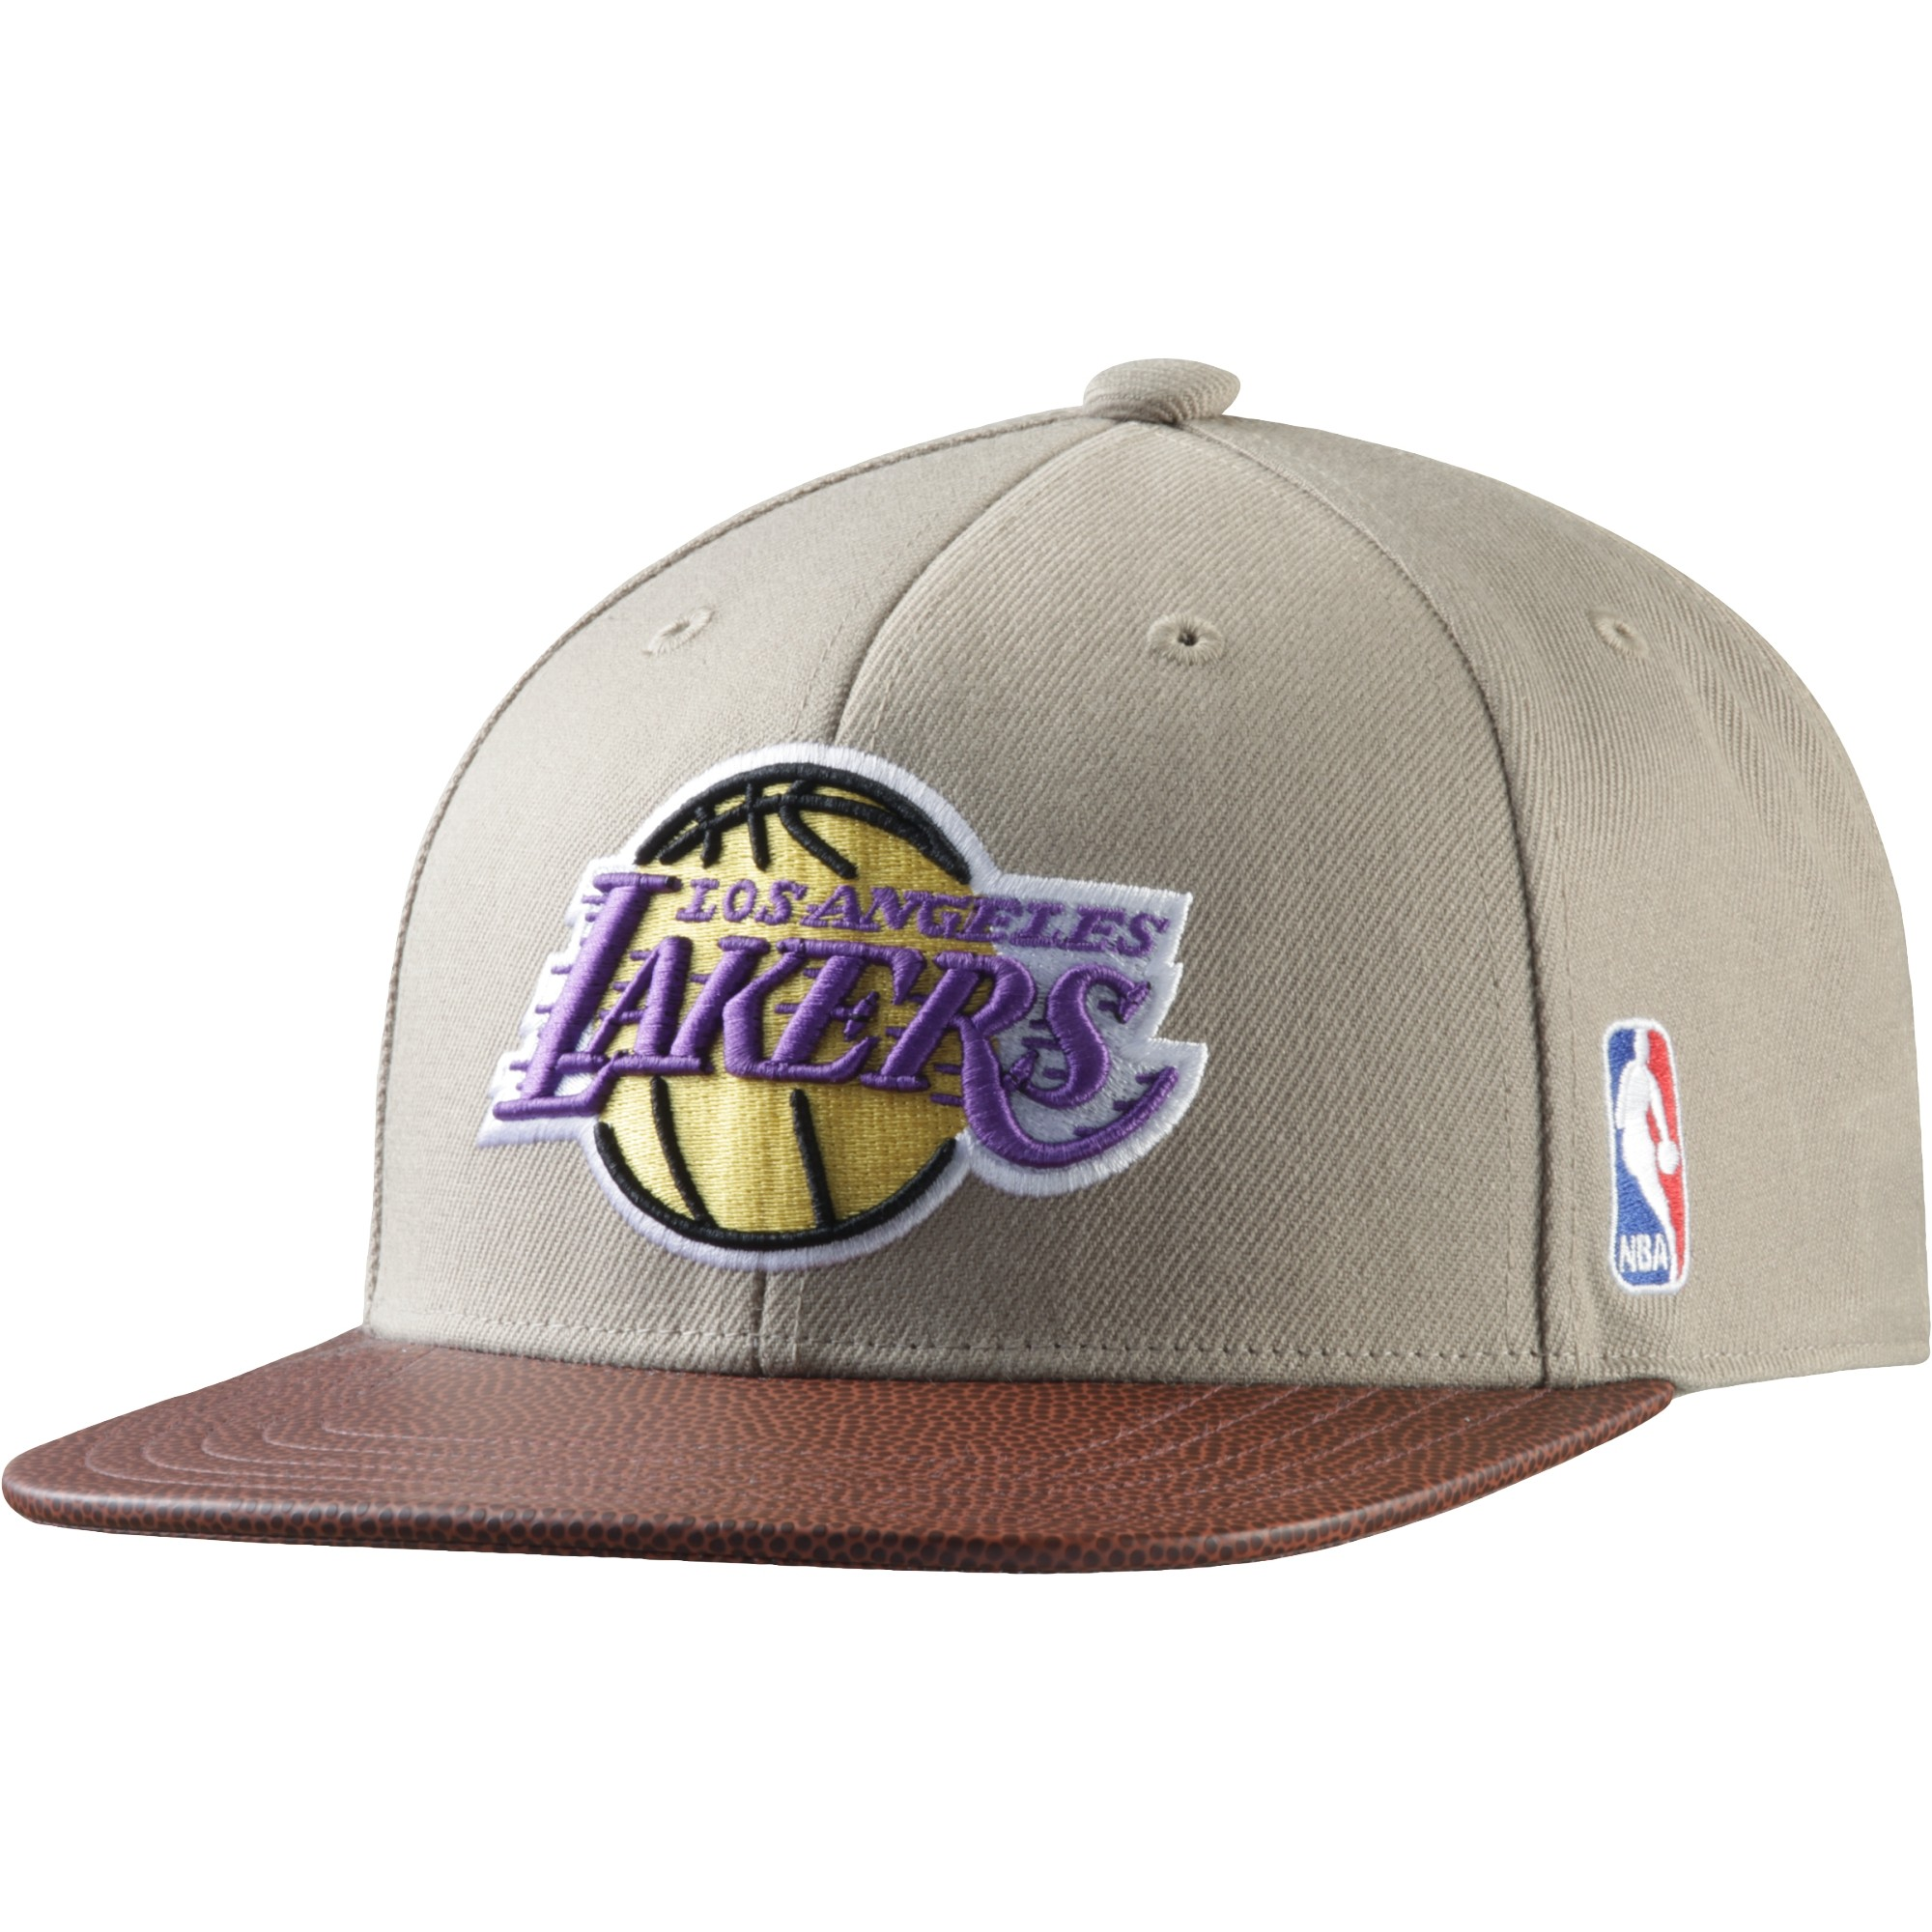 Kšiltovka Adidas Originals NBA La Lakers croc